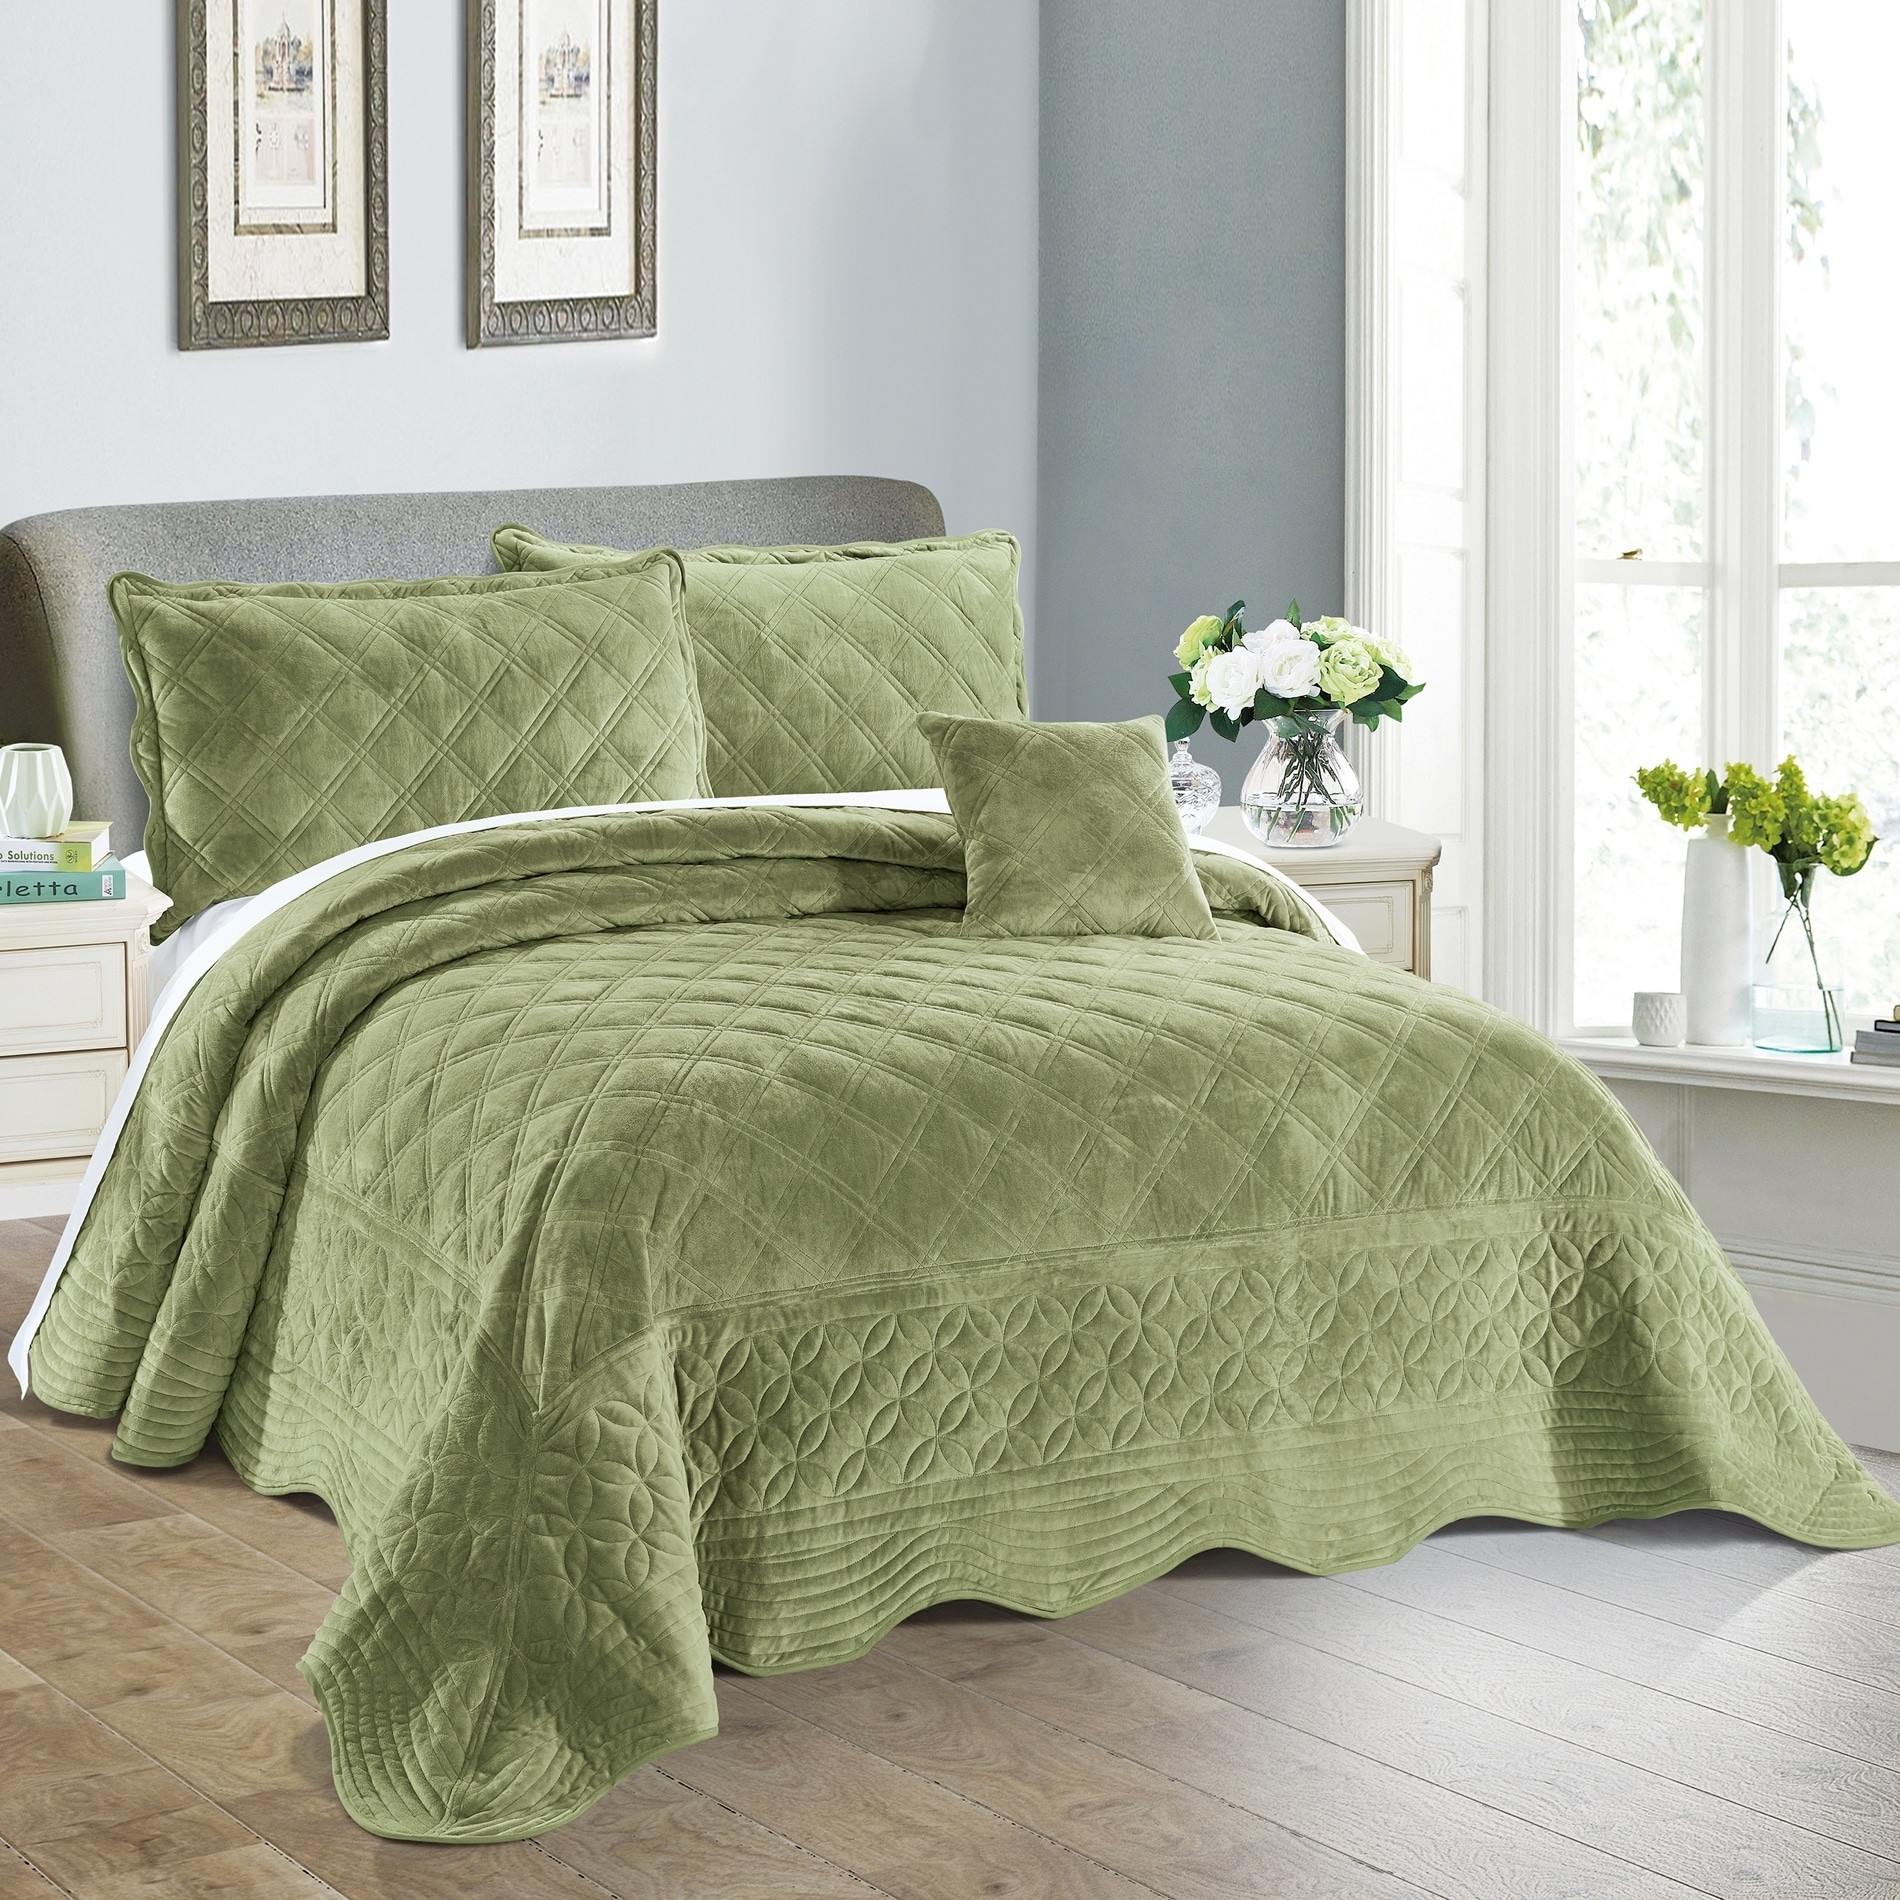 Serenta Supersoft Microplush Quilted 4 Piece Bed Spread Set